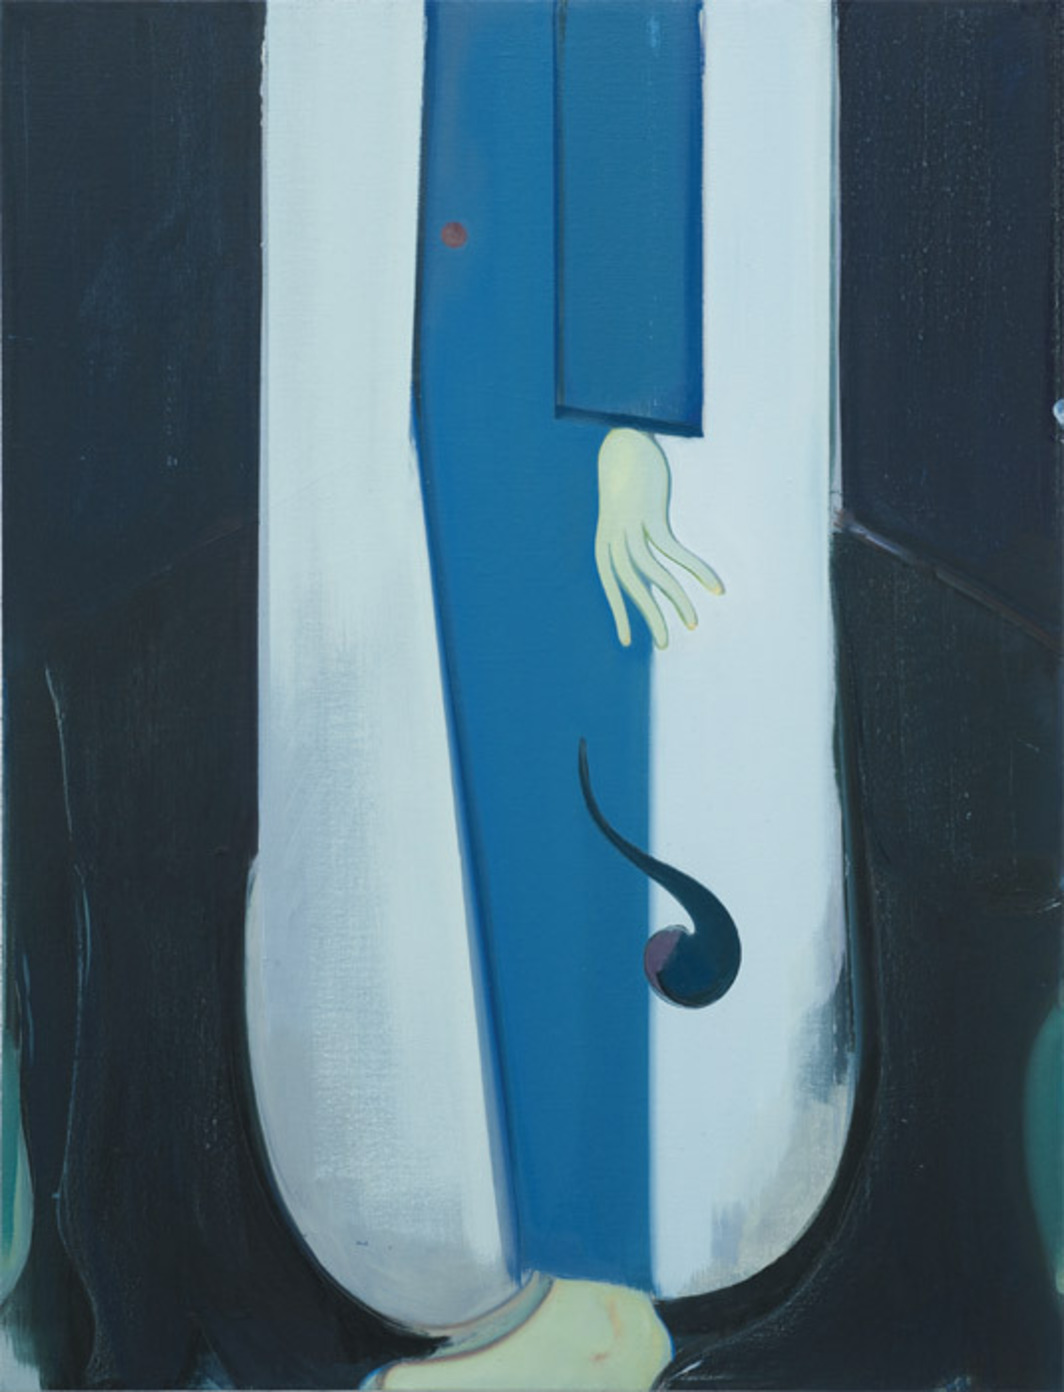 "Sanya Kantarovsky, The Man with the Black Coat, 2012, oil and watercolor on linen, 34 x 26""."